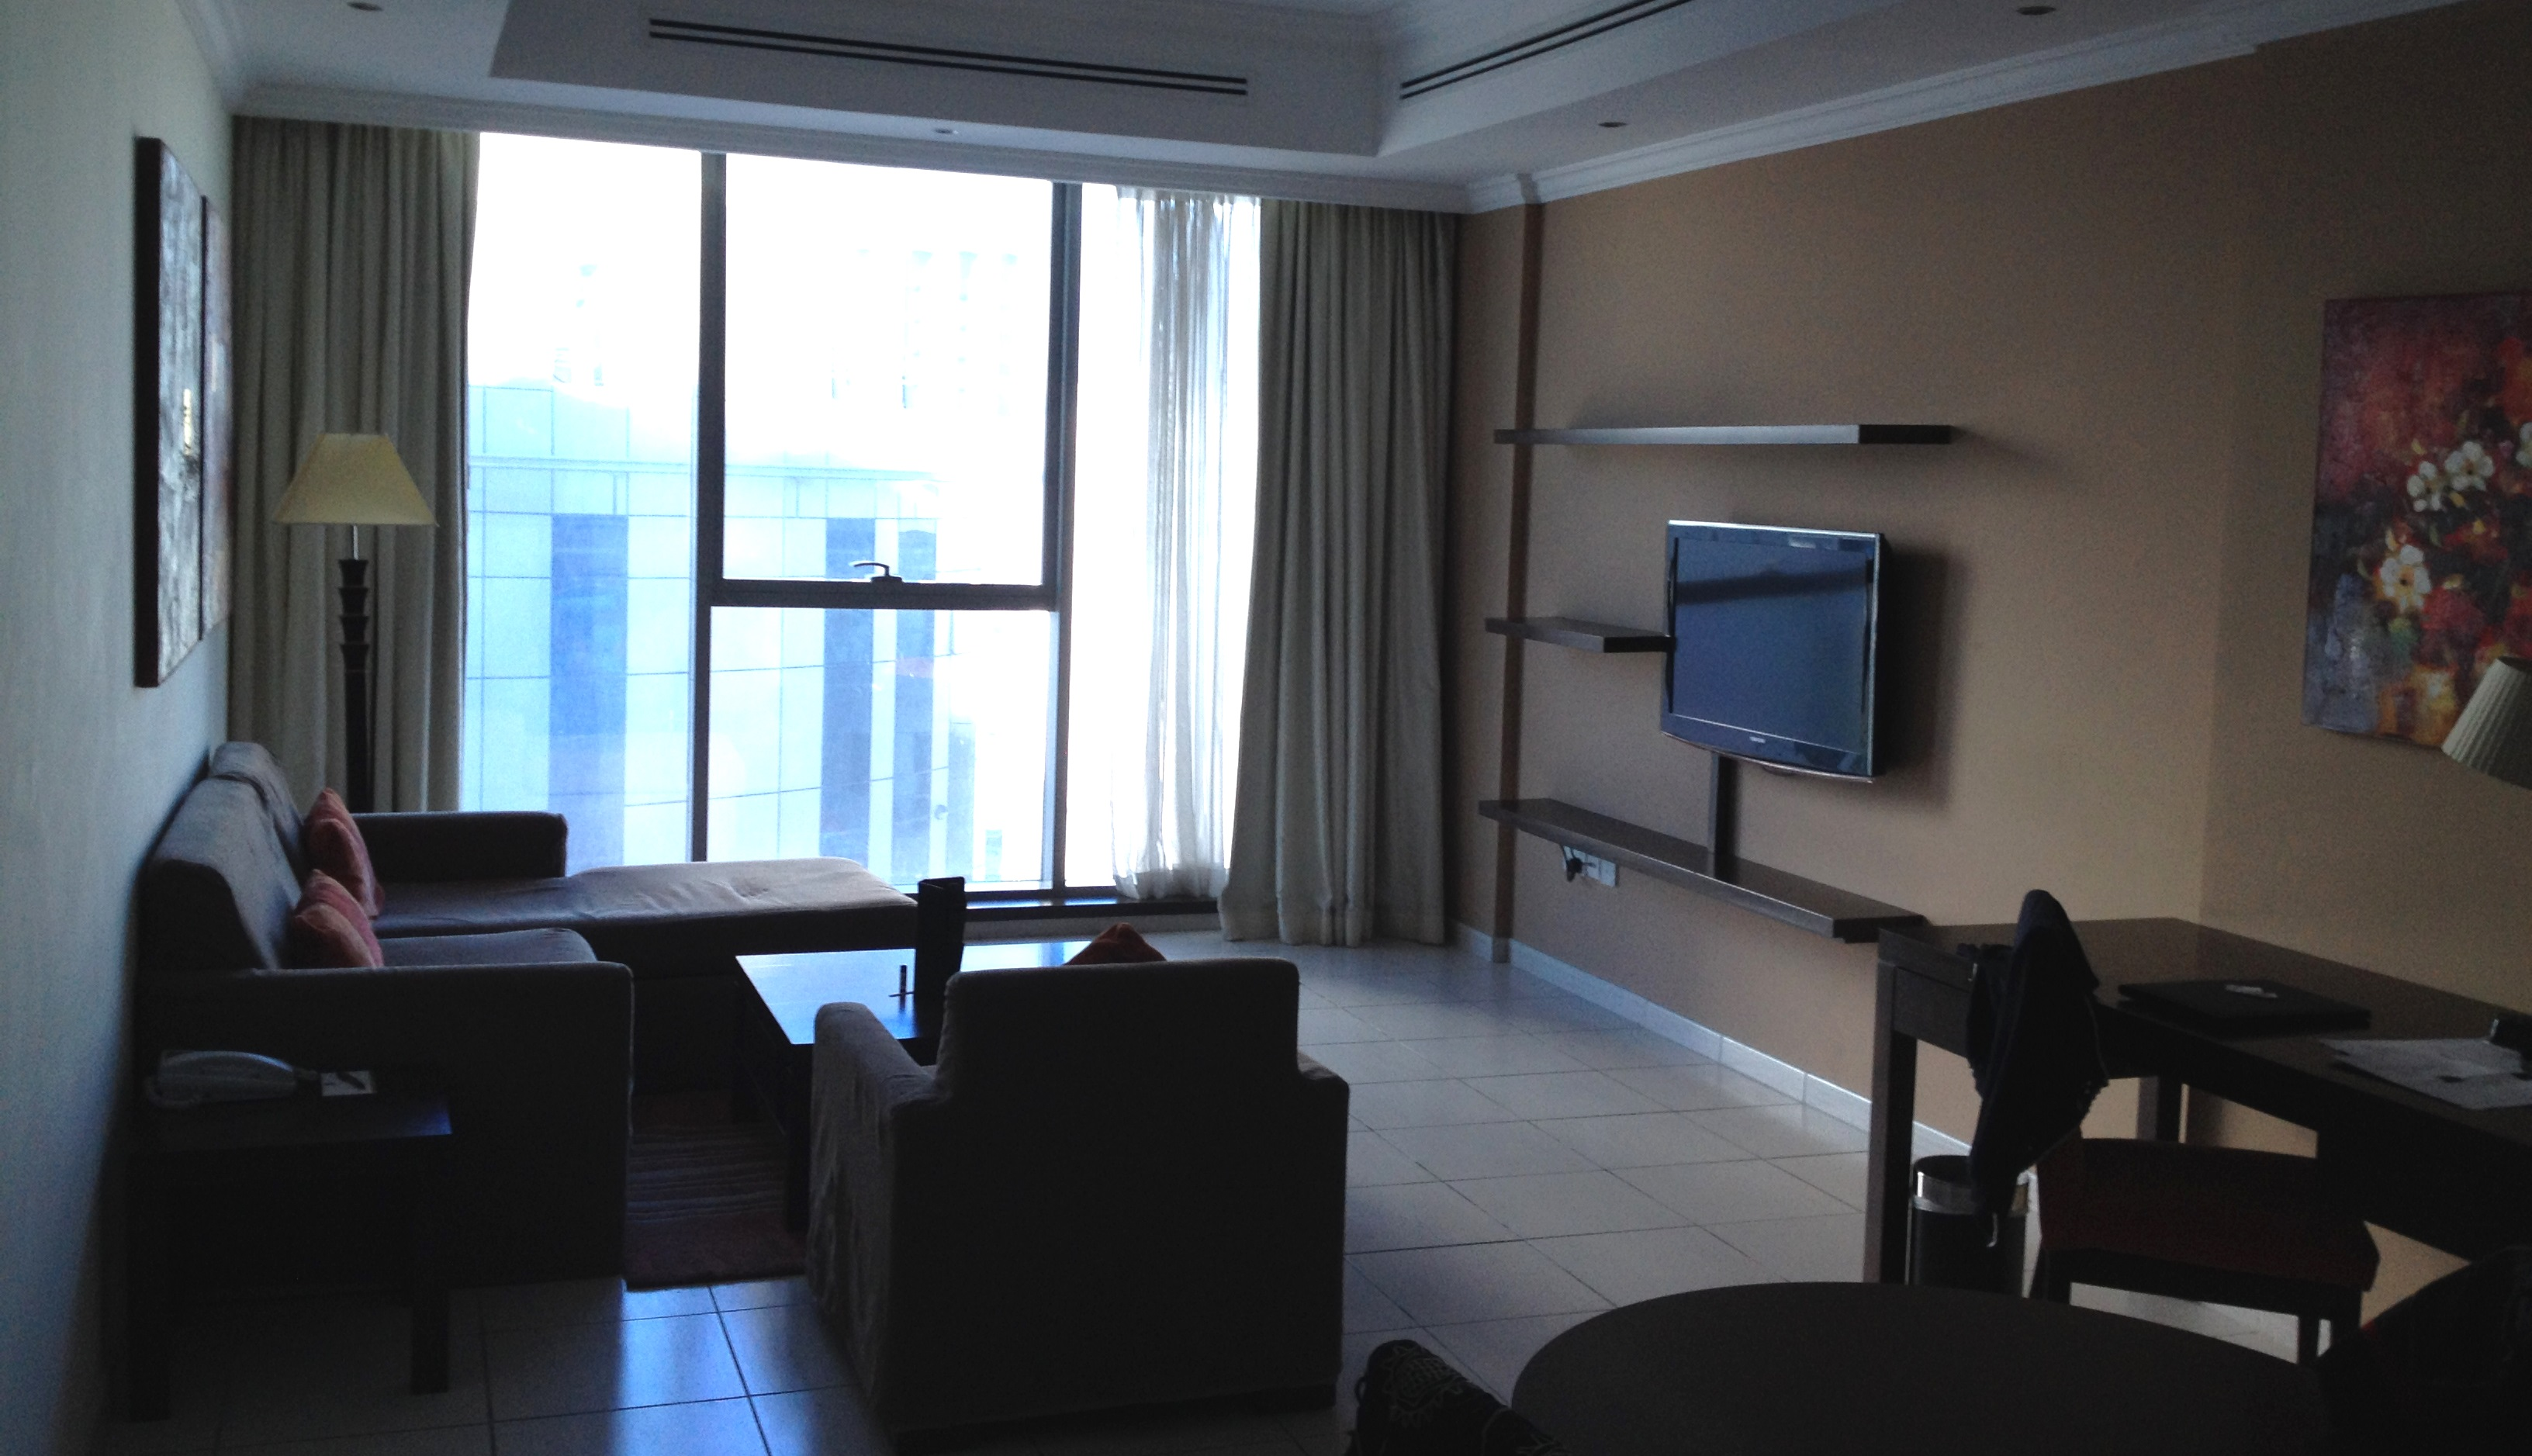 abisod-hotel-apartment-al-barsha-travelgrip- (4)